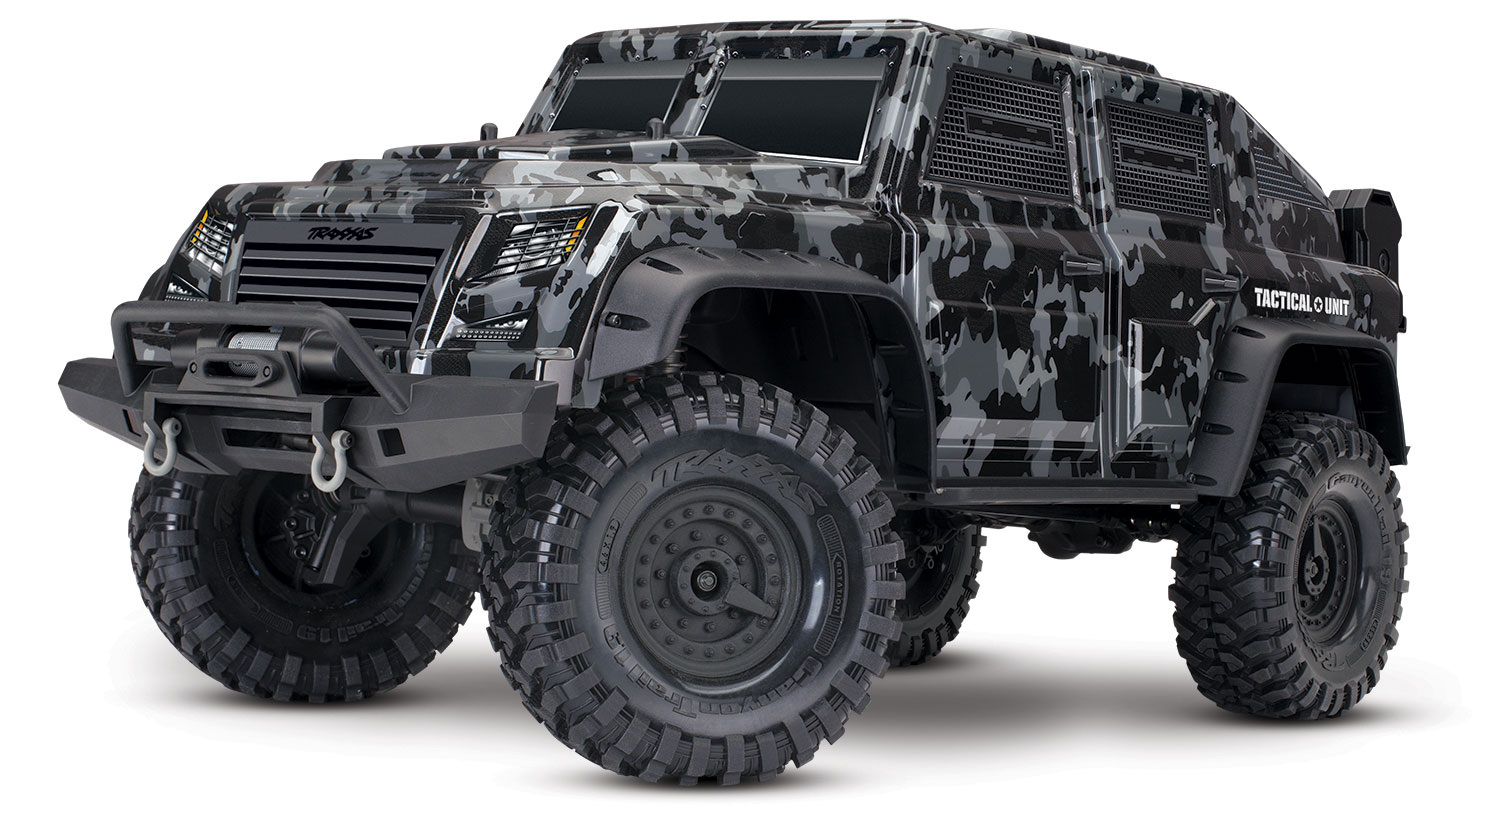 TRX-4 Tactical Unit